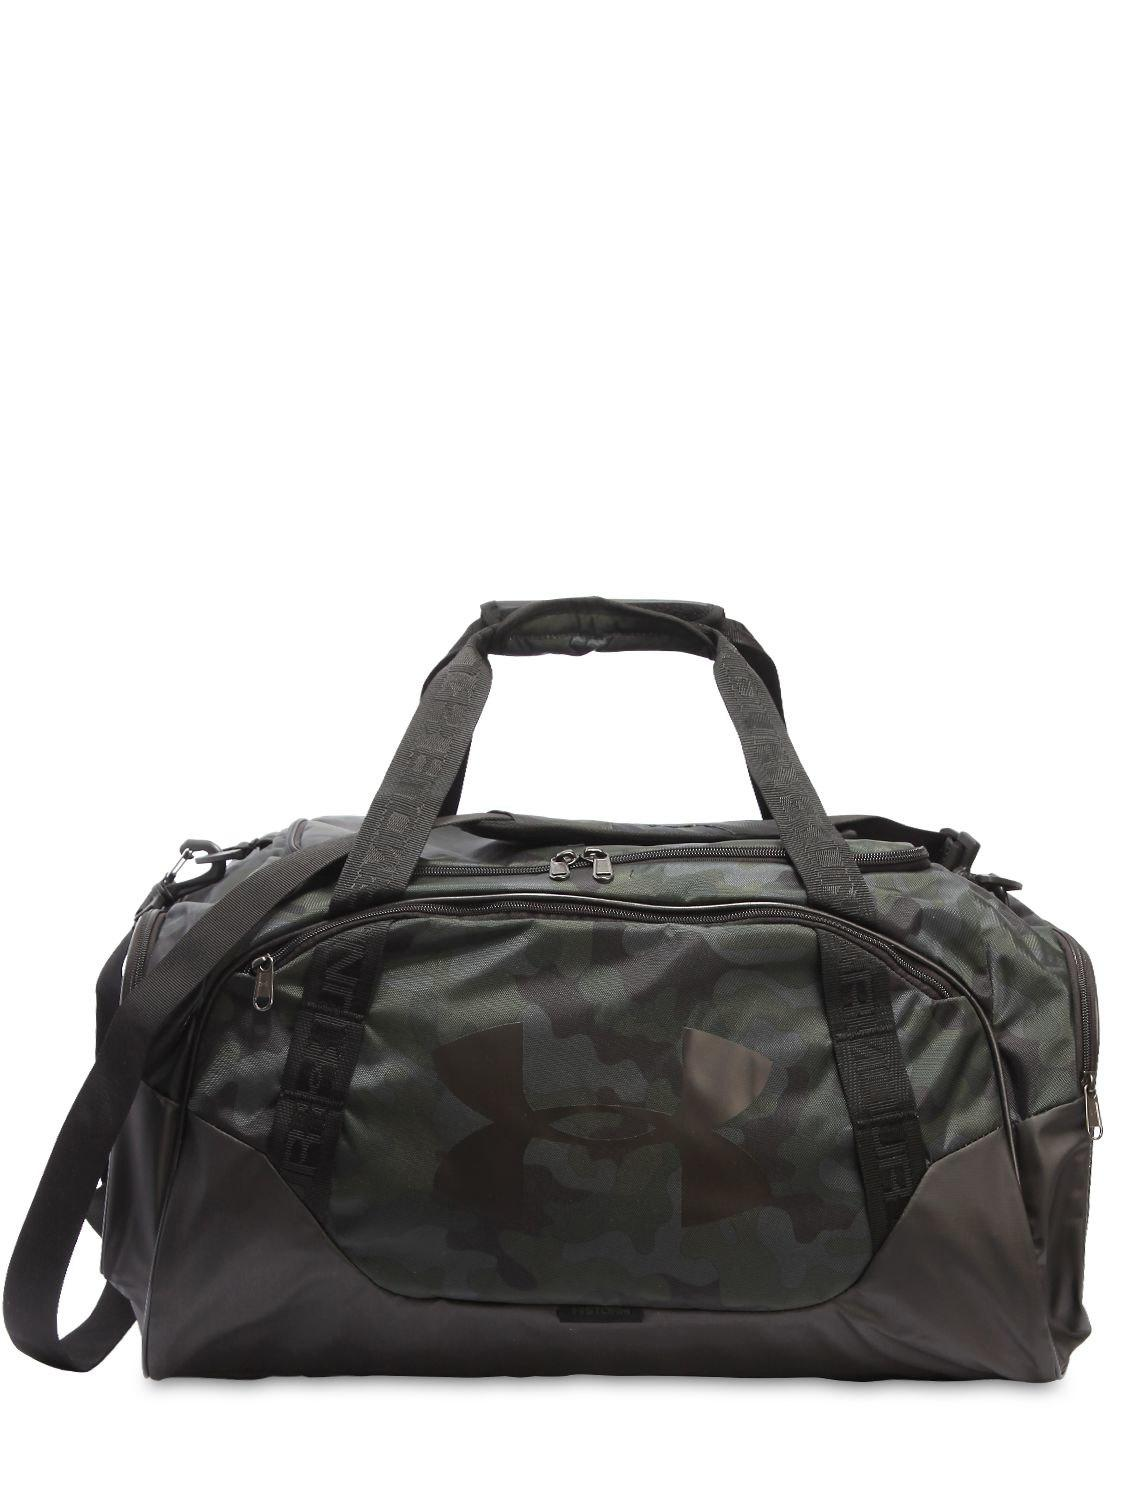 Lyst - Bolsa de deporte de nylon estampado camo 56l Under Armour de ... c80dad23f2cf5